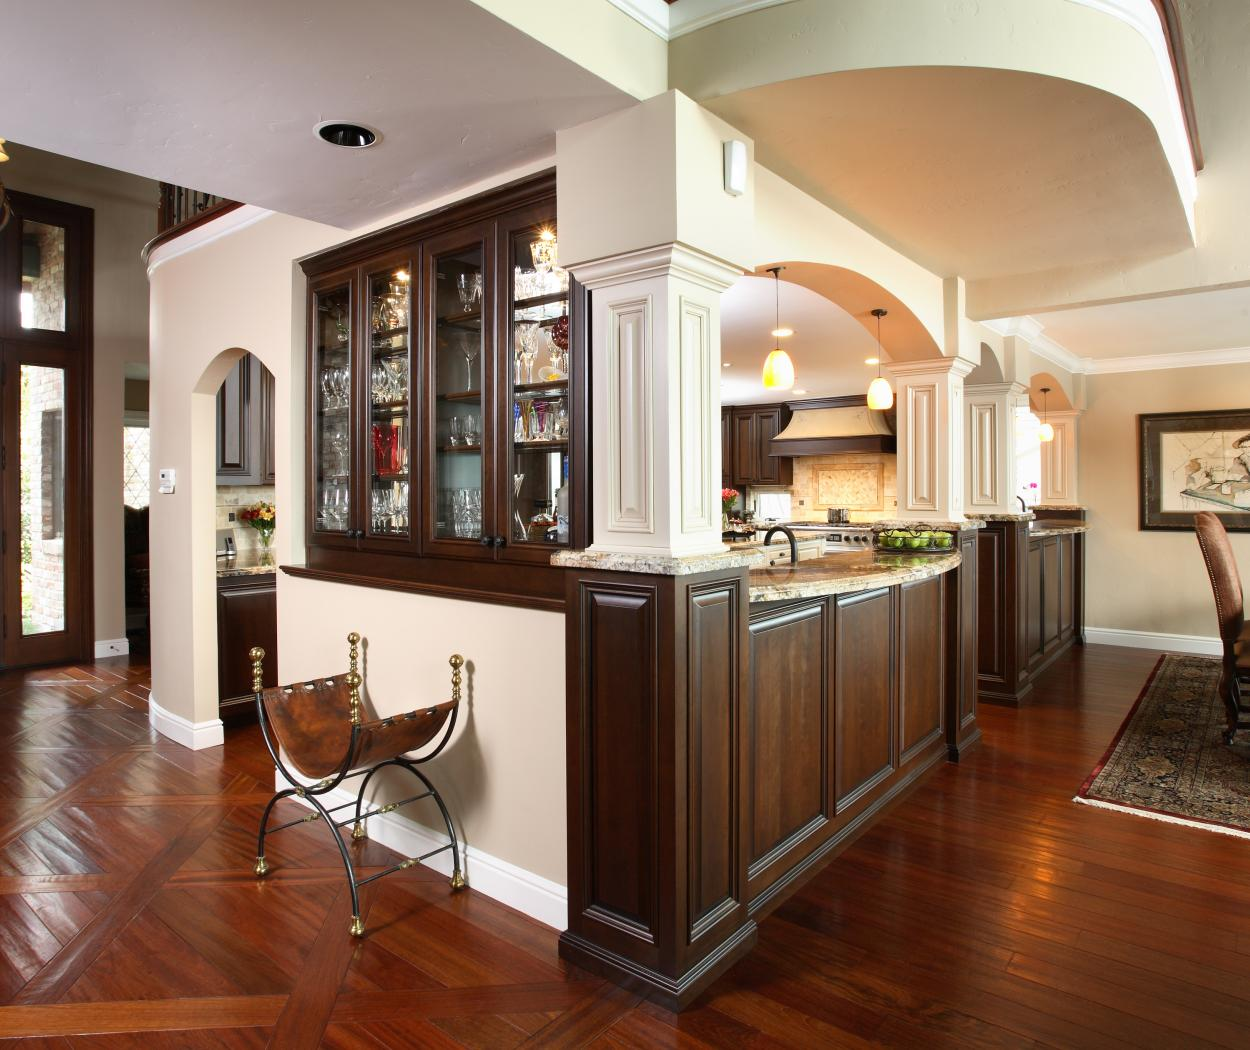 Traditional Chocolate Stain Built-In with Beautiful Glass Doors and Oil Rubbed Bronze Knobs